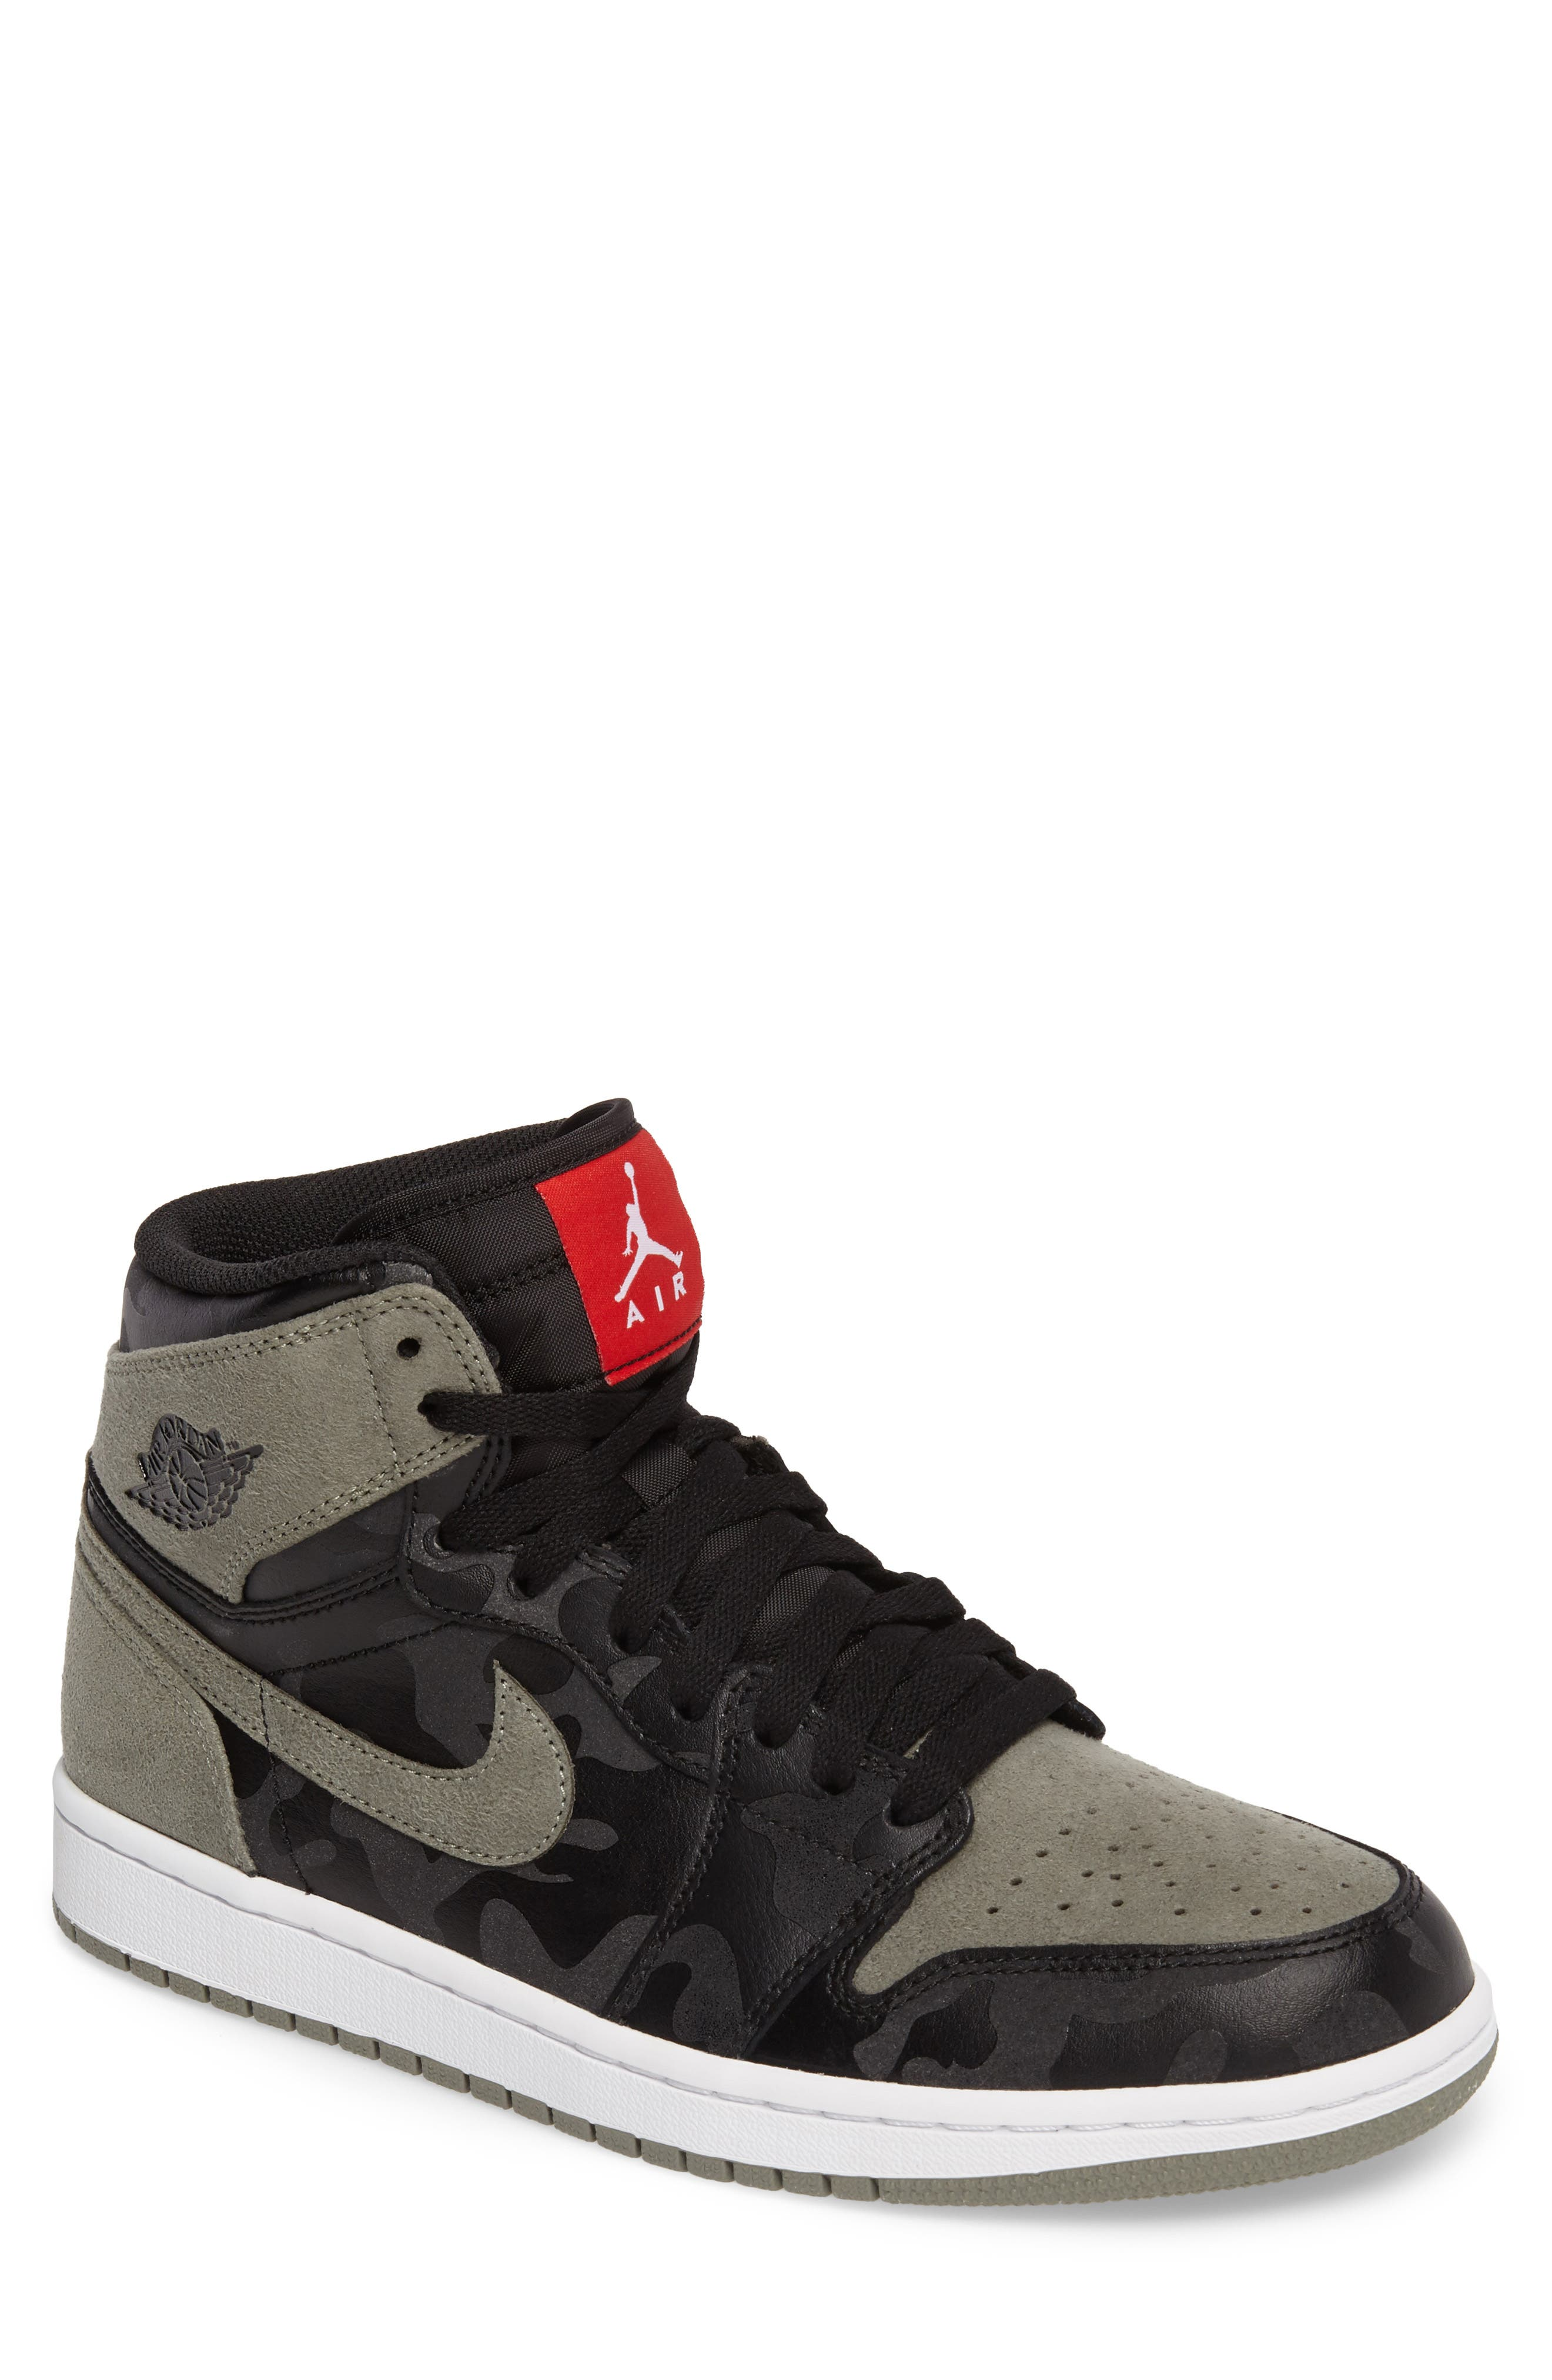 Air Jordan 1 Retro High Top Sneaker,                             Main thumbnail 1, color,                             Black/ Black